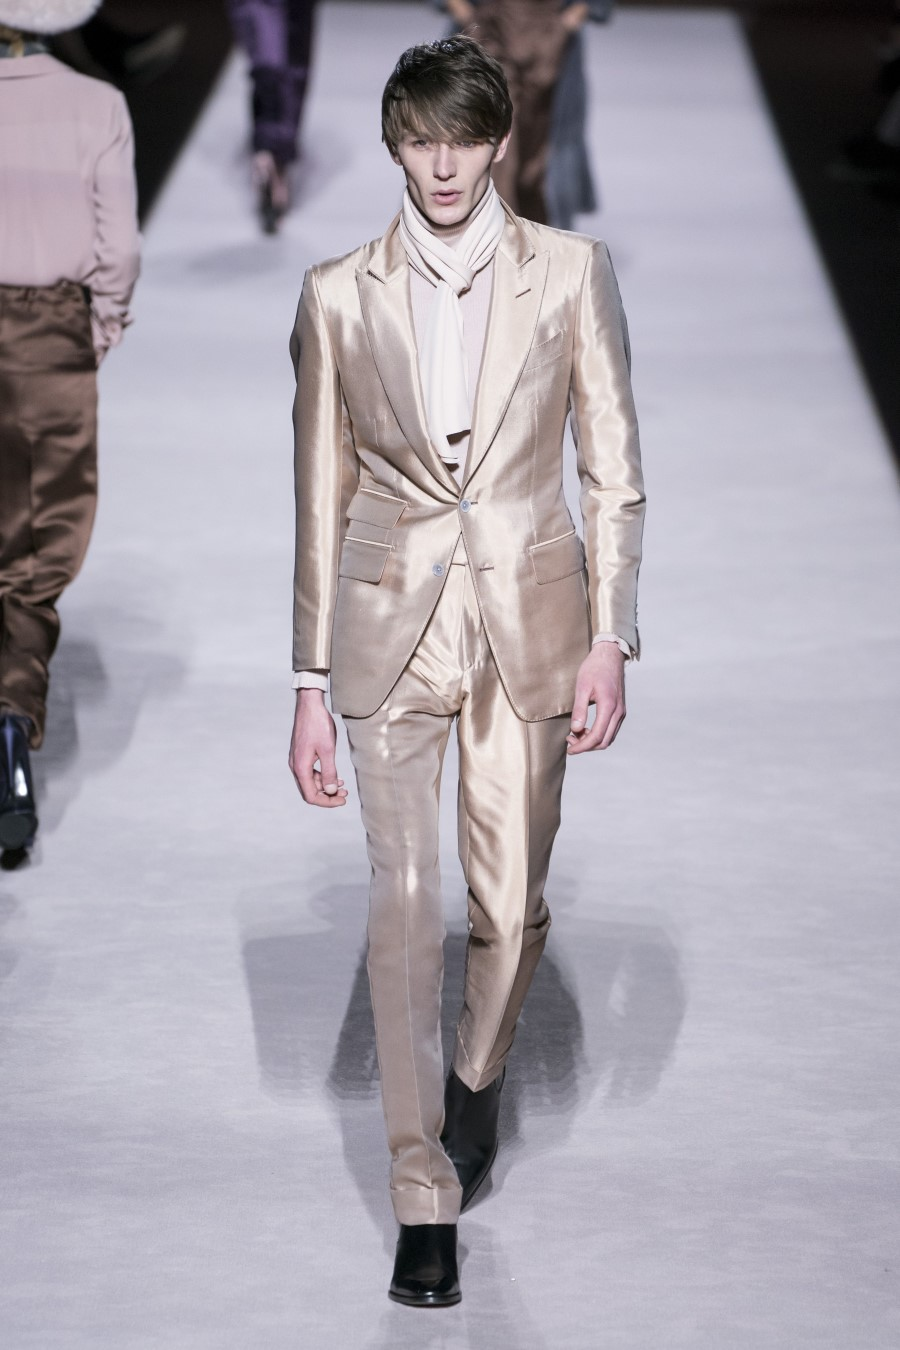 Tom Ford Fall Winter 2019 - New York Fashion Week